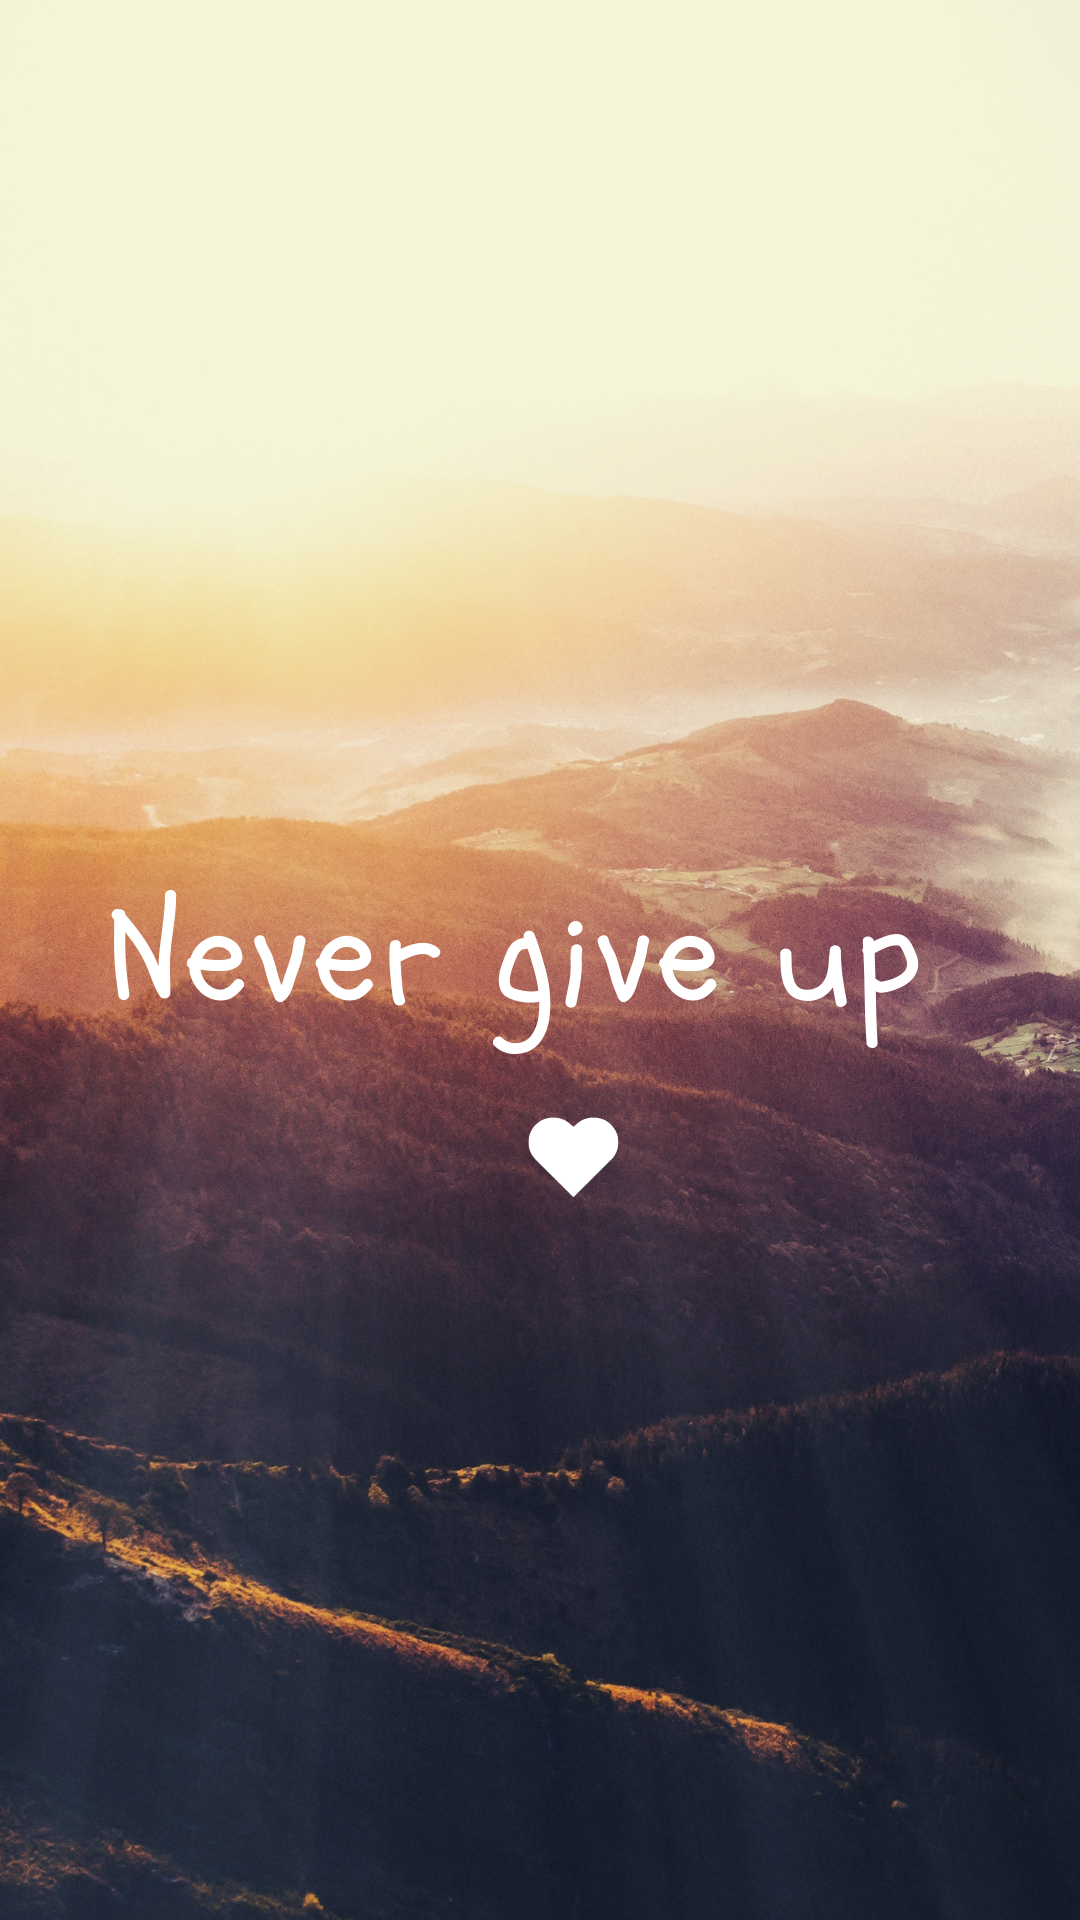 Papel De Parede Para Celular Never Give Up Happy Wallpaper Never Give Up Sports Quotes